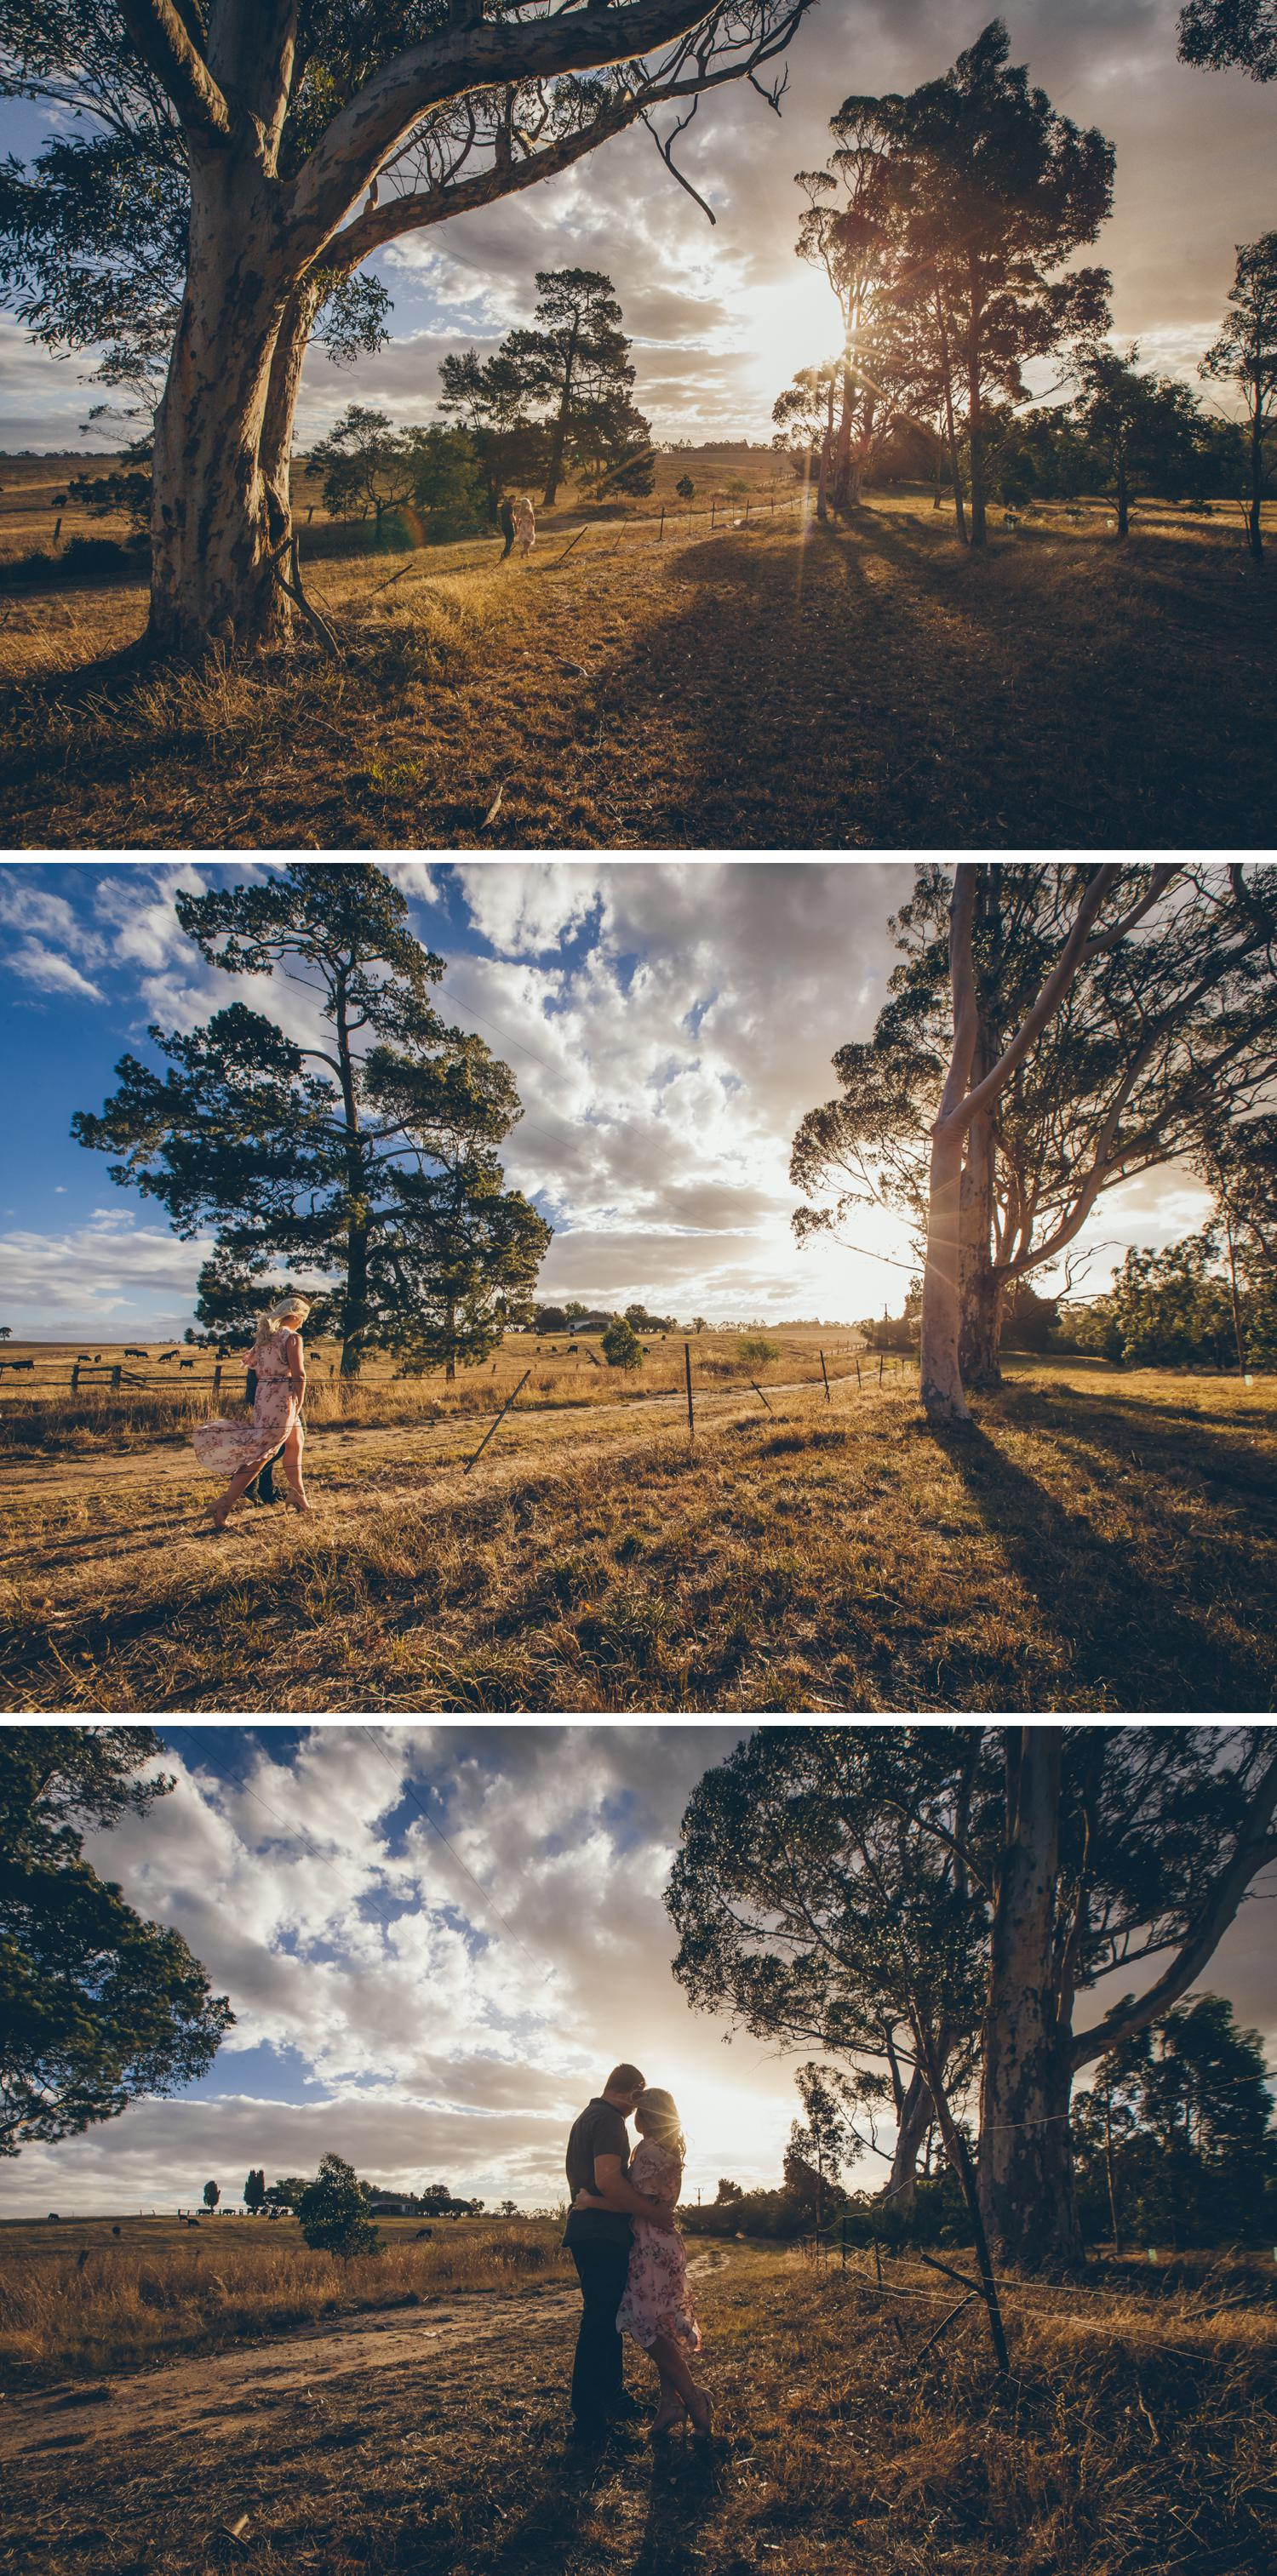 Couple Embracing Open Field Engagement Shoot, Wide Angle Shot of Bride and Groom Embracing in Long Grass, Beautiful Trees Photo by Danae Studios